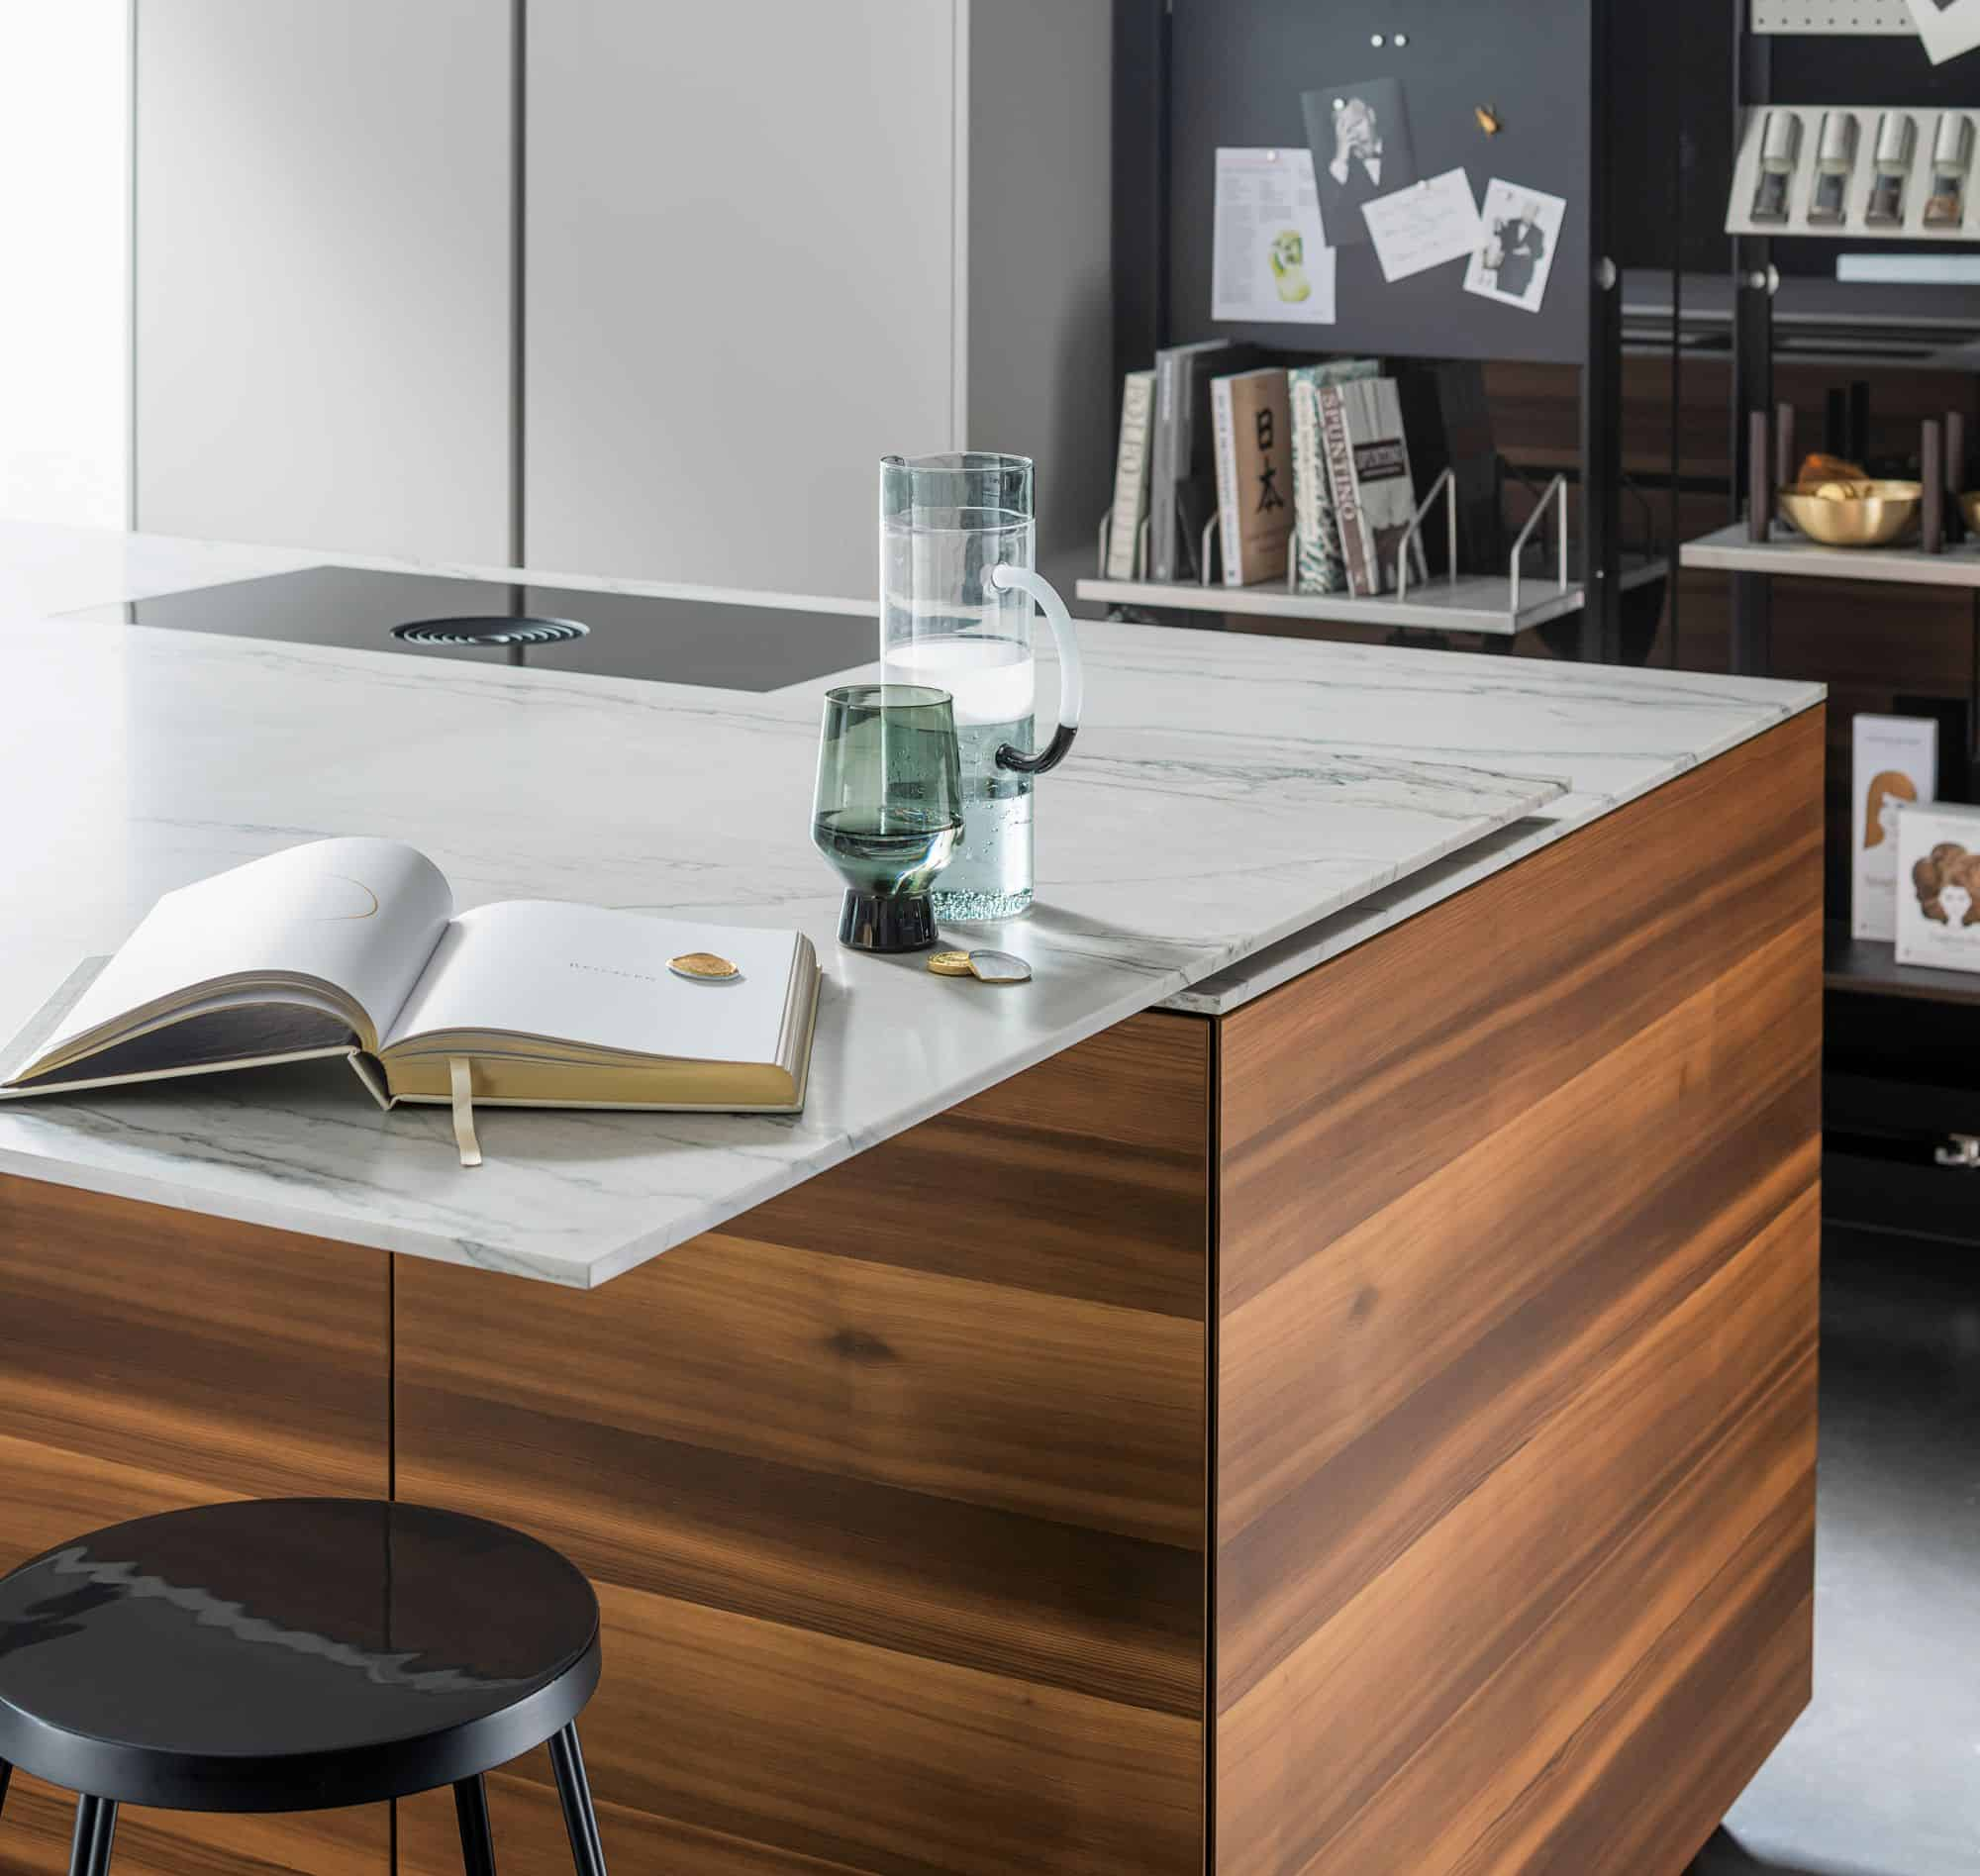 eggersmann MOTION sliding countertop opens to reveal induction cooktop simultaneously creating a dining table